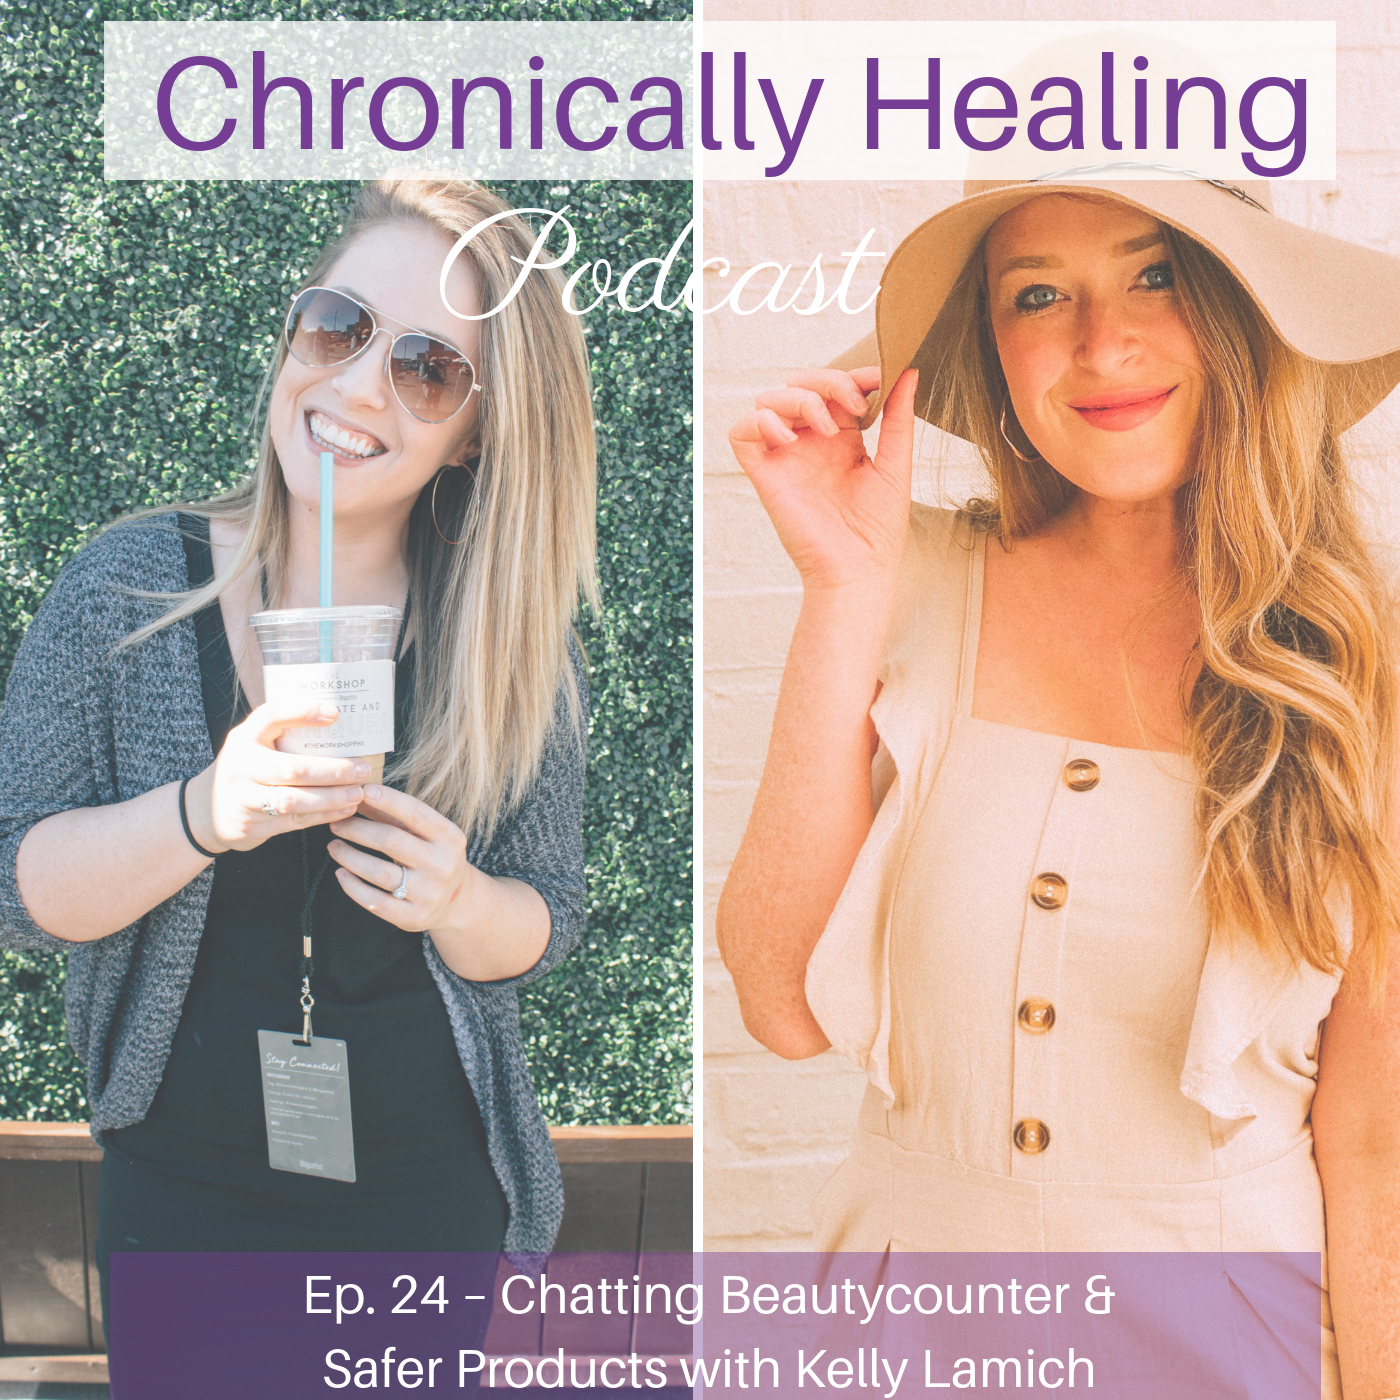 Chronically Healing Podcast Ep. 24 – Chatting Beautycounter & Safer Products with Kelly Lamich